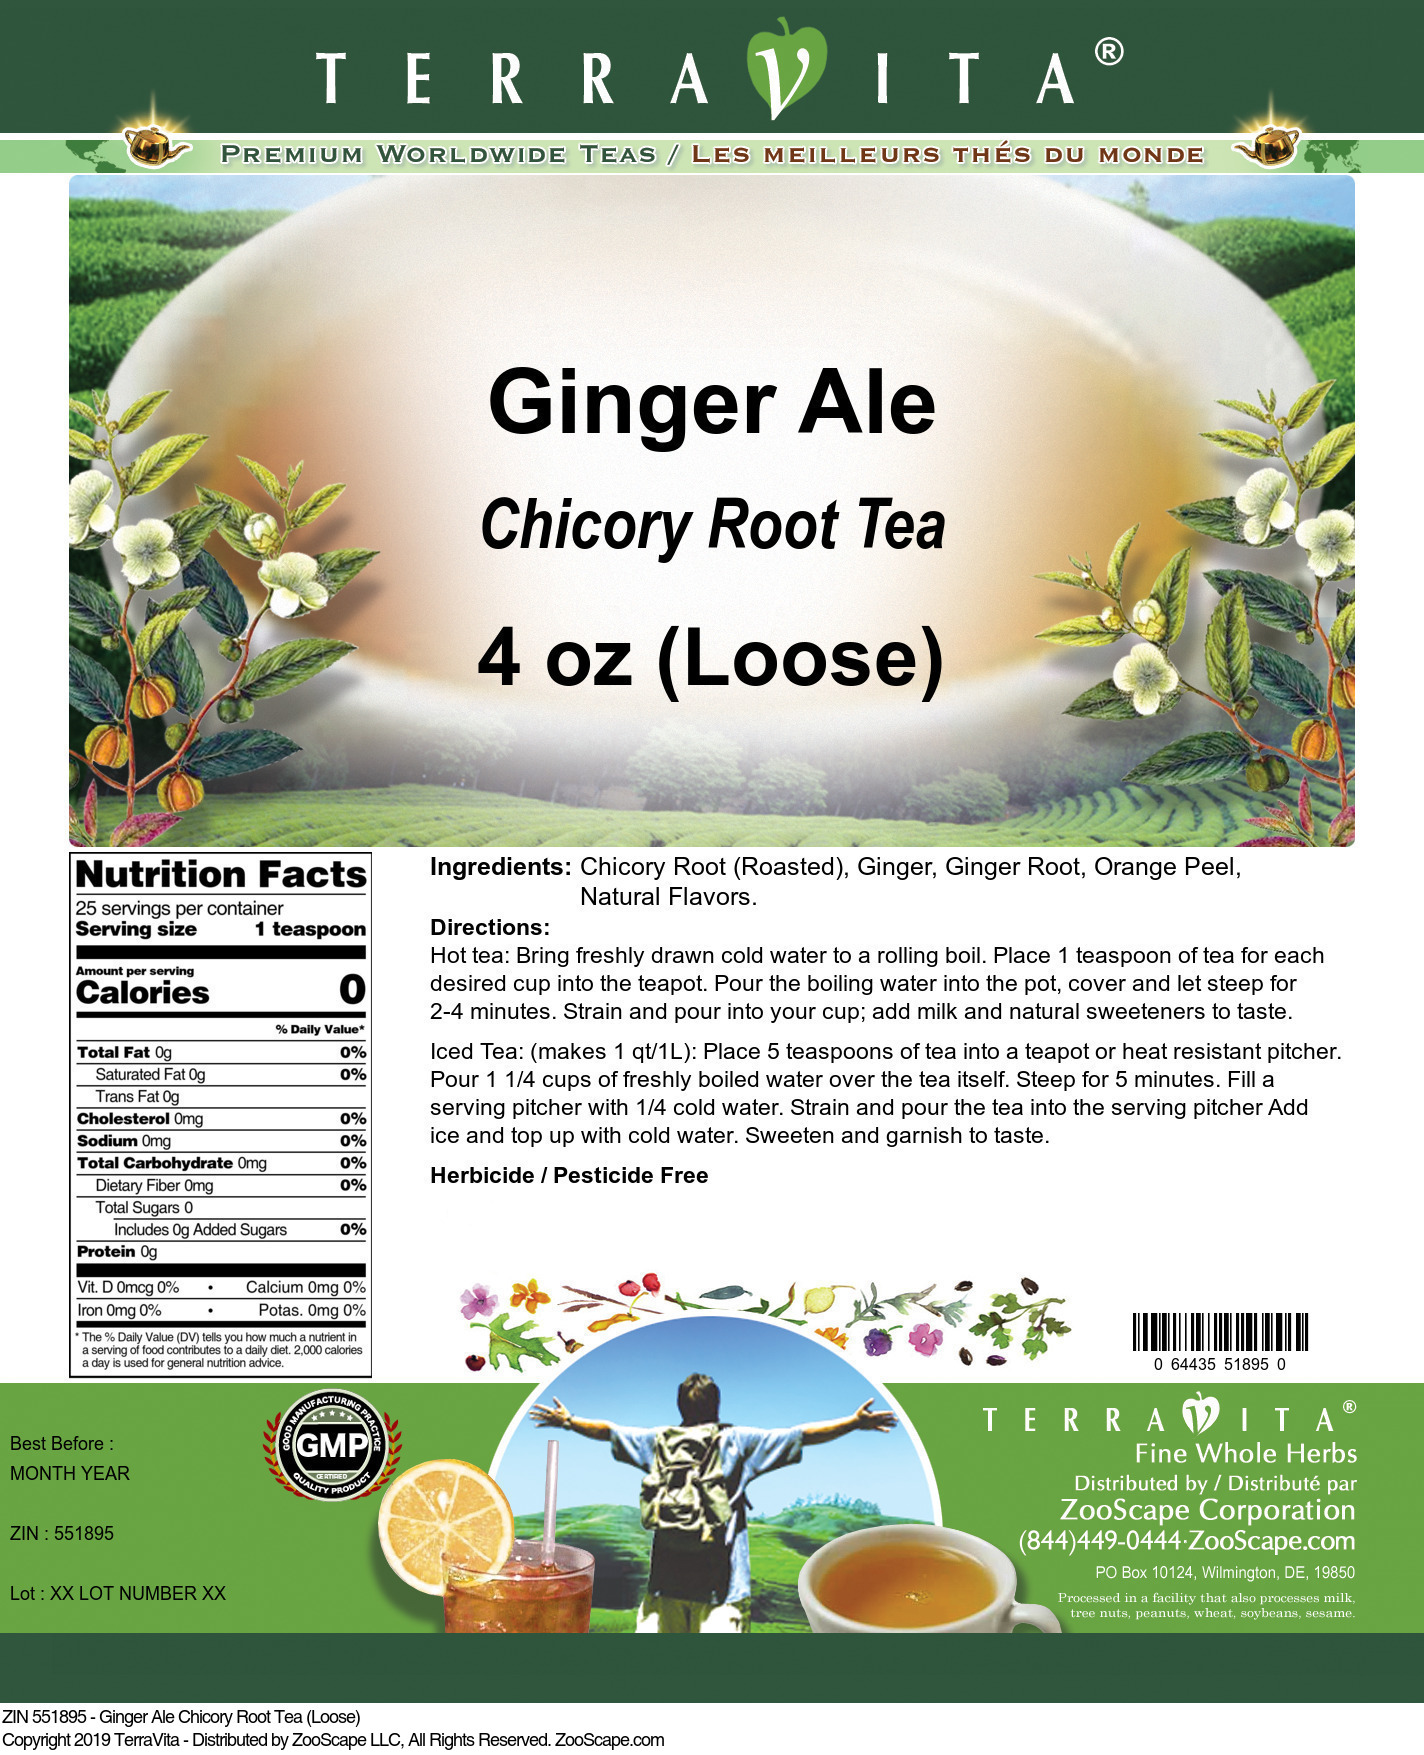 Ginger Ale Chicory Root